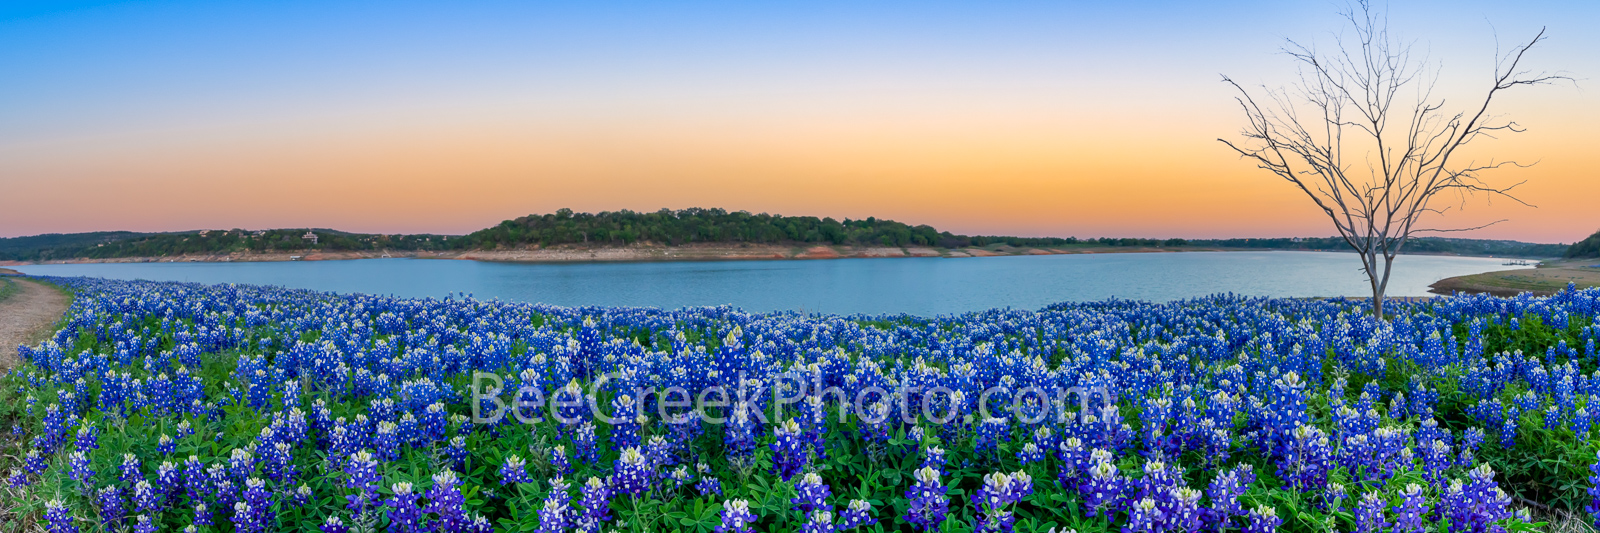 texas, bluebonnets, lake bluebonnets, texas wildflower, texas bluebonnet, colorful, pano, panorama, texas bluebonnets, lake, river, images of texas, tx hill country, texas, sunset, field of bluebonnet, texas hill country, blue bonnet, blue bonnets, texas bluebonnet, art, flowers, field of wildflowers, , wildflowers, texas, river, flowers, hill country, landscape, lupine, texas lupines, nature, bluebonnets, landscape, bluebonnets texas, bluebonnet images, muleshoe park, lake travis, river,